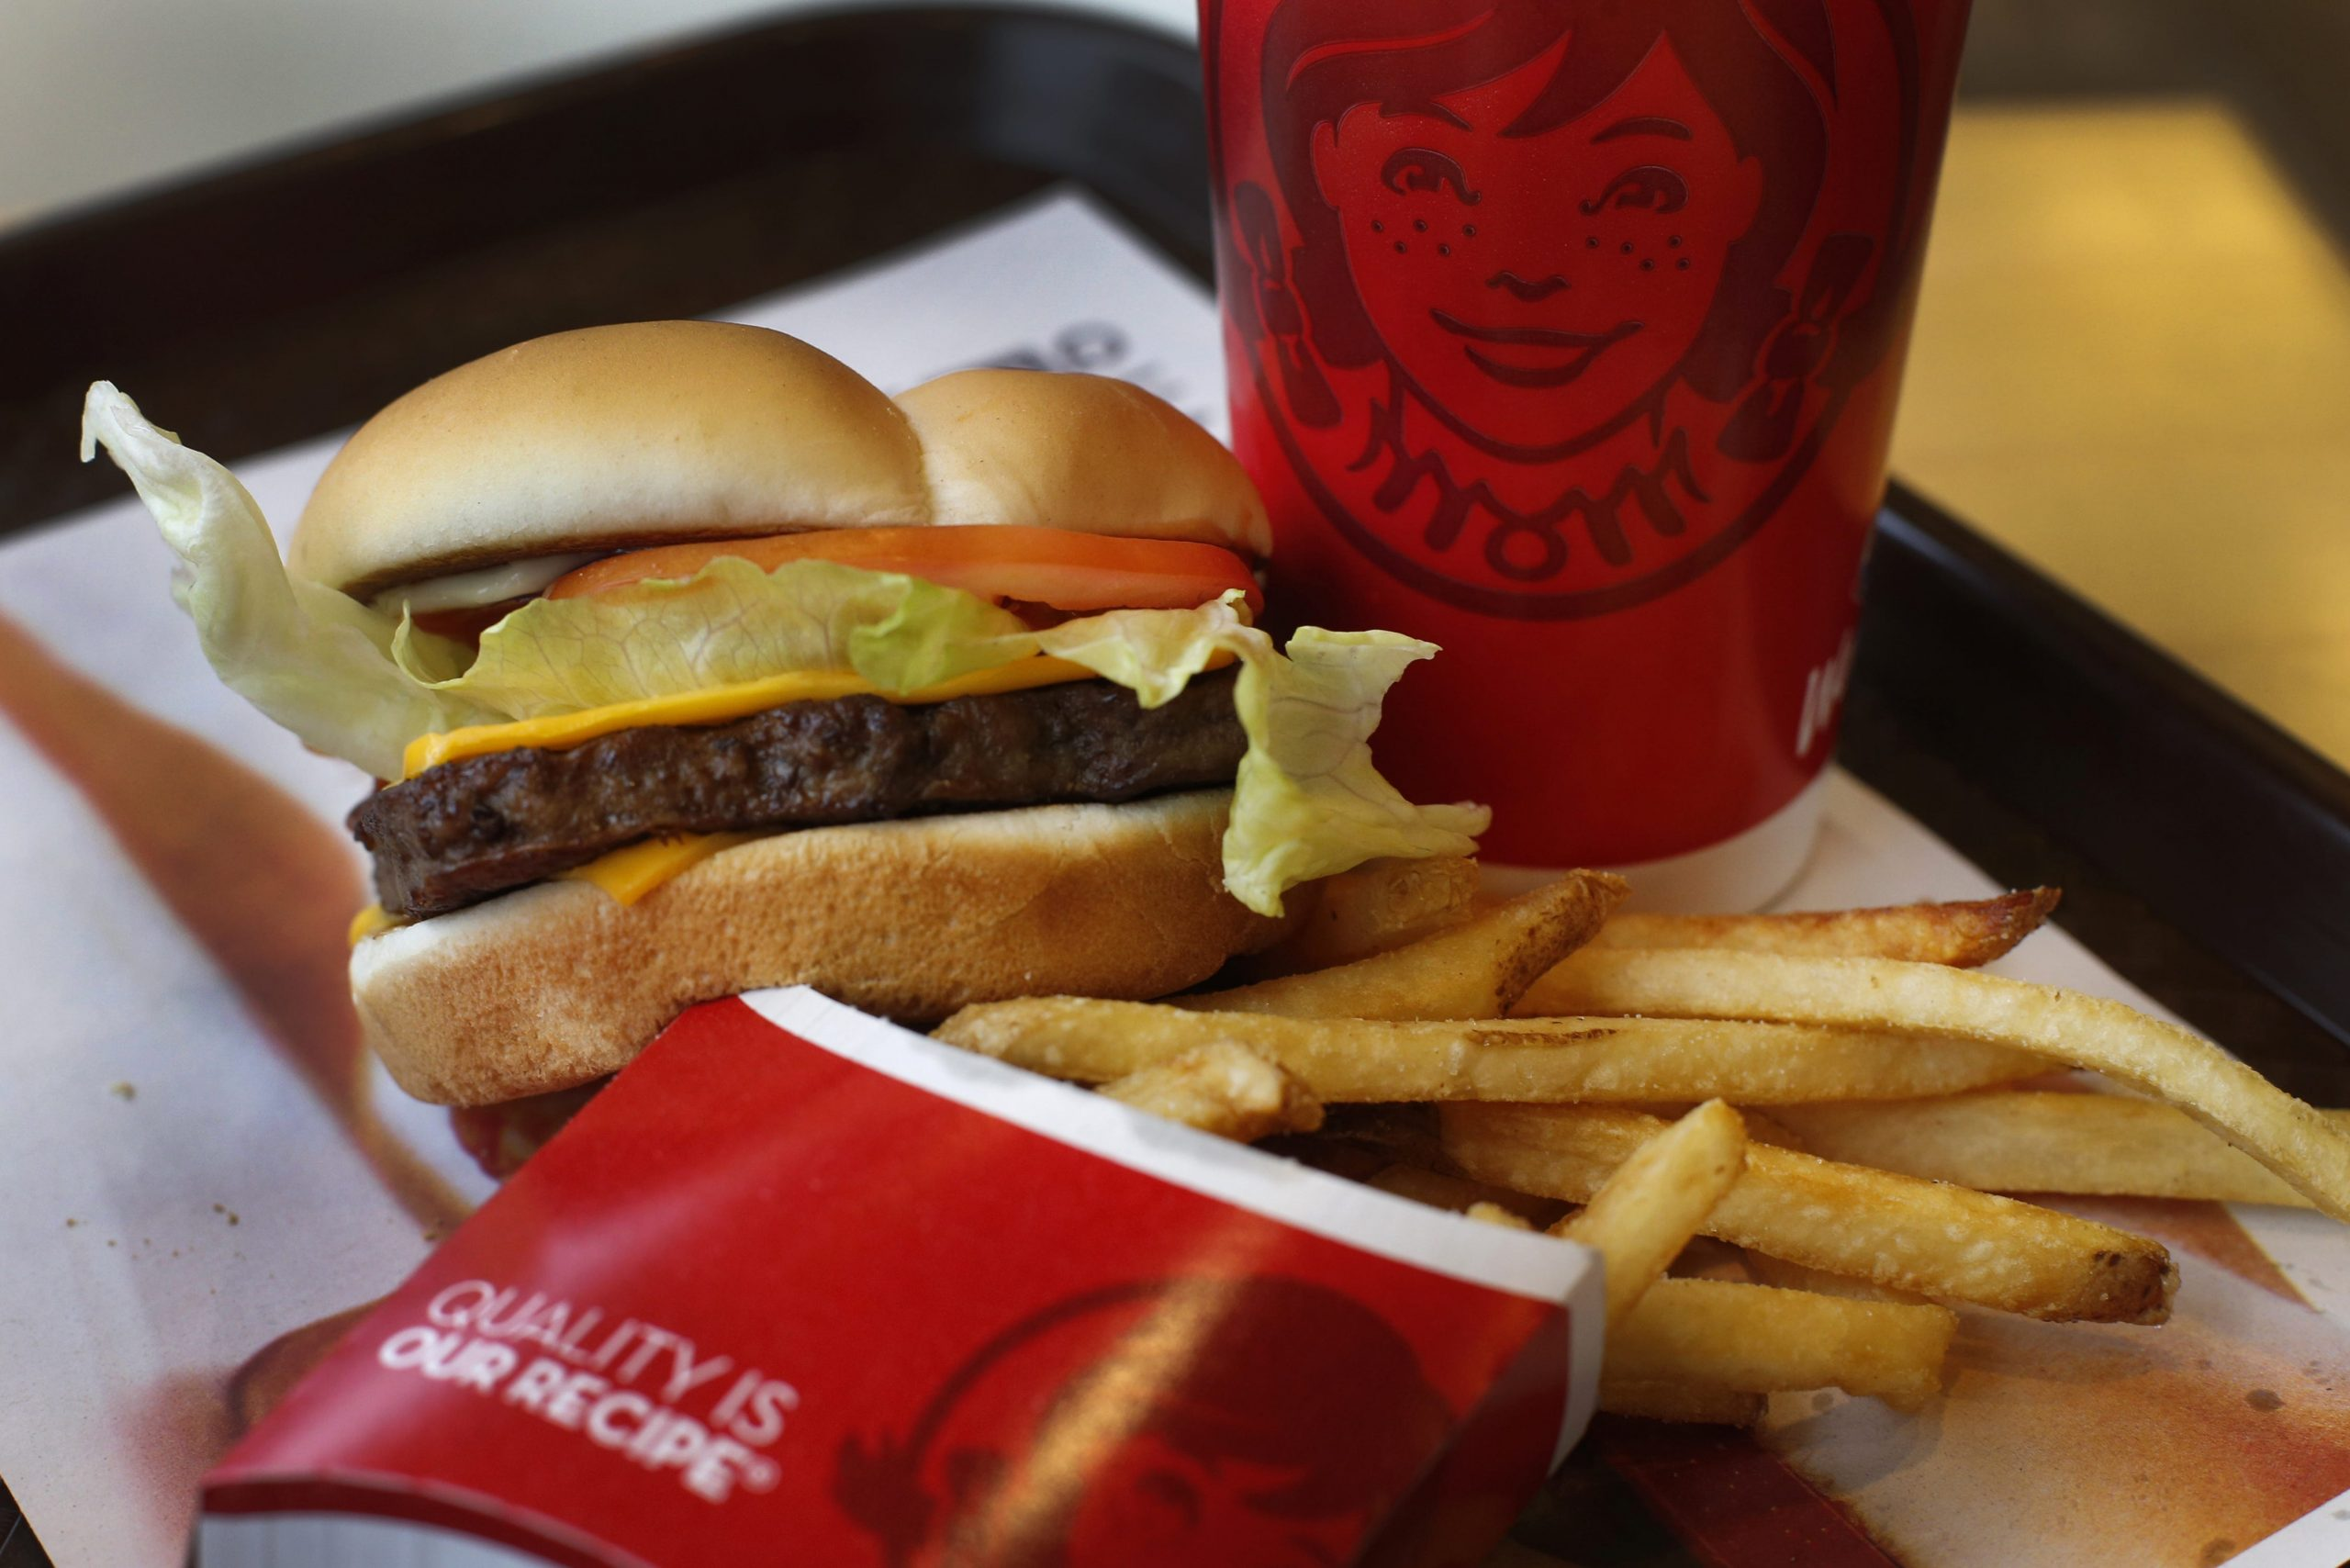 McDonald's, Burger King, Wendy's, Red Robin and more have National Burger Day deals, freebies Friday